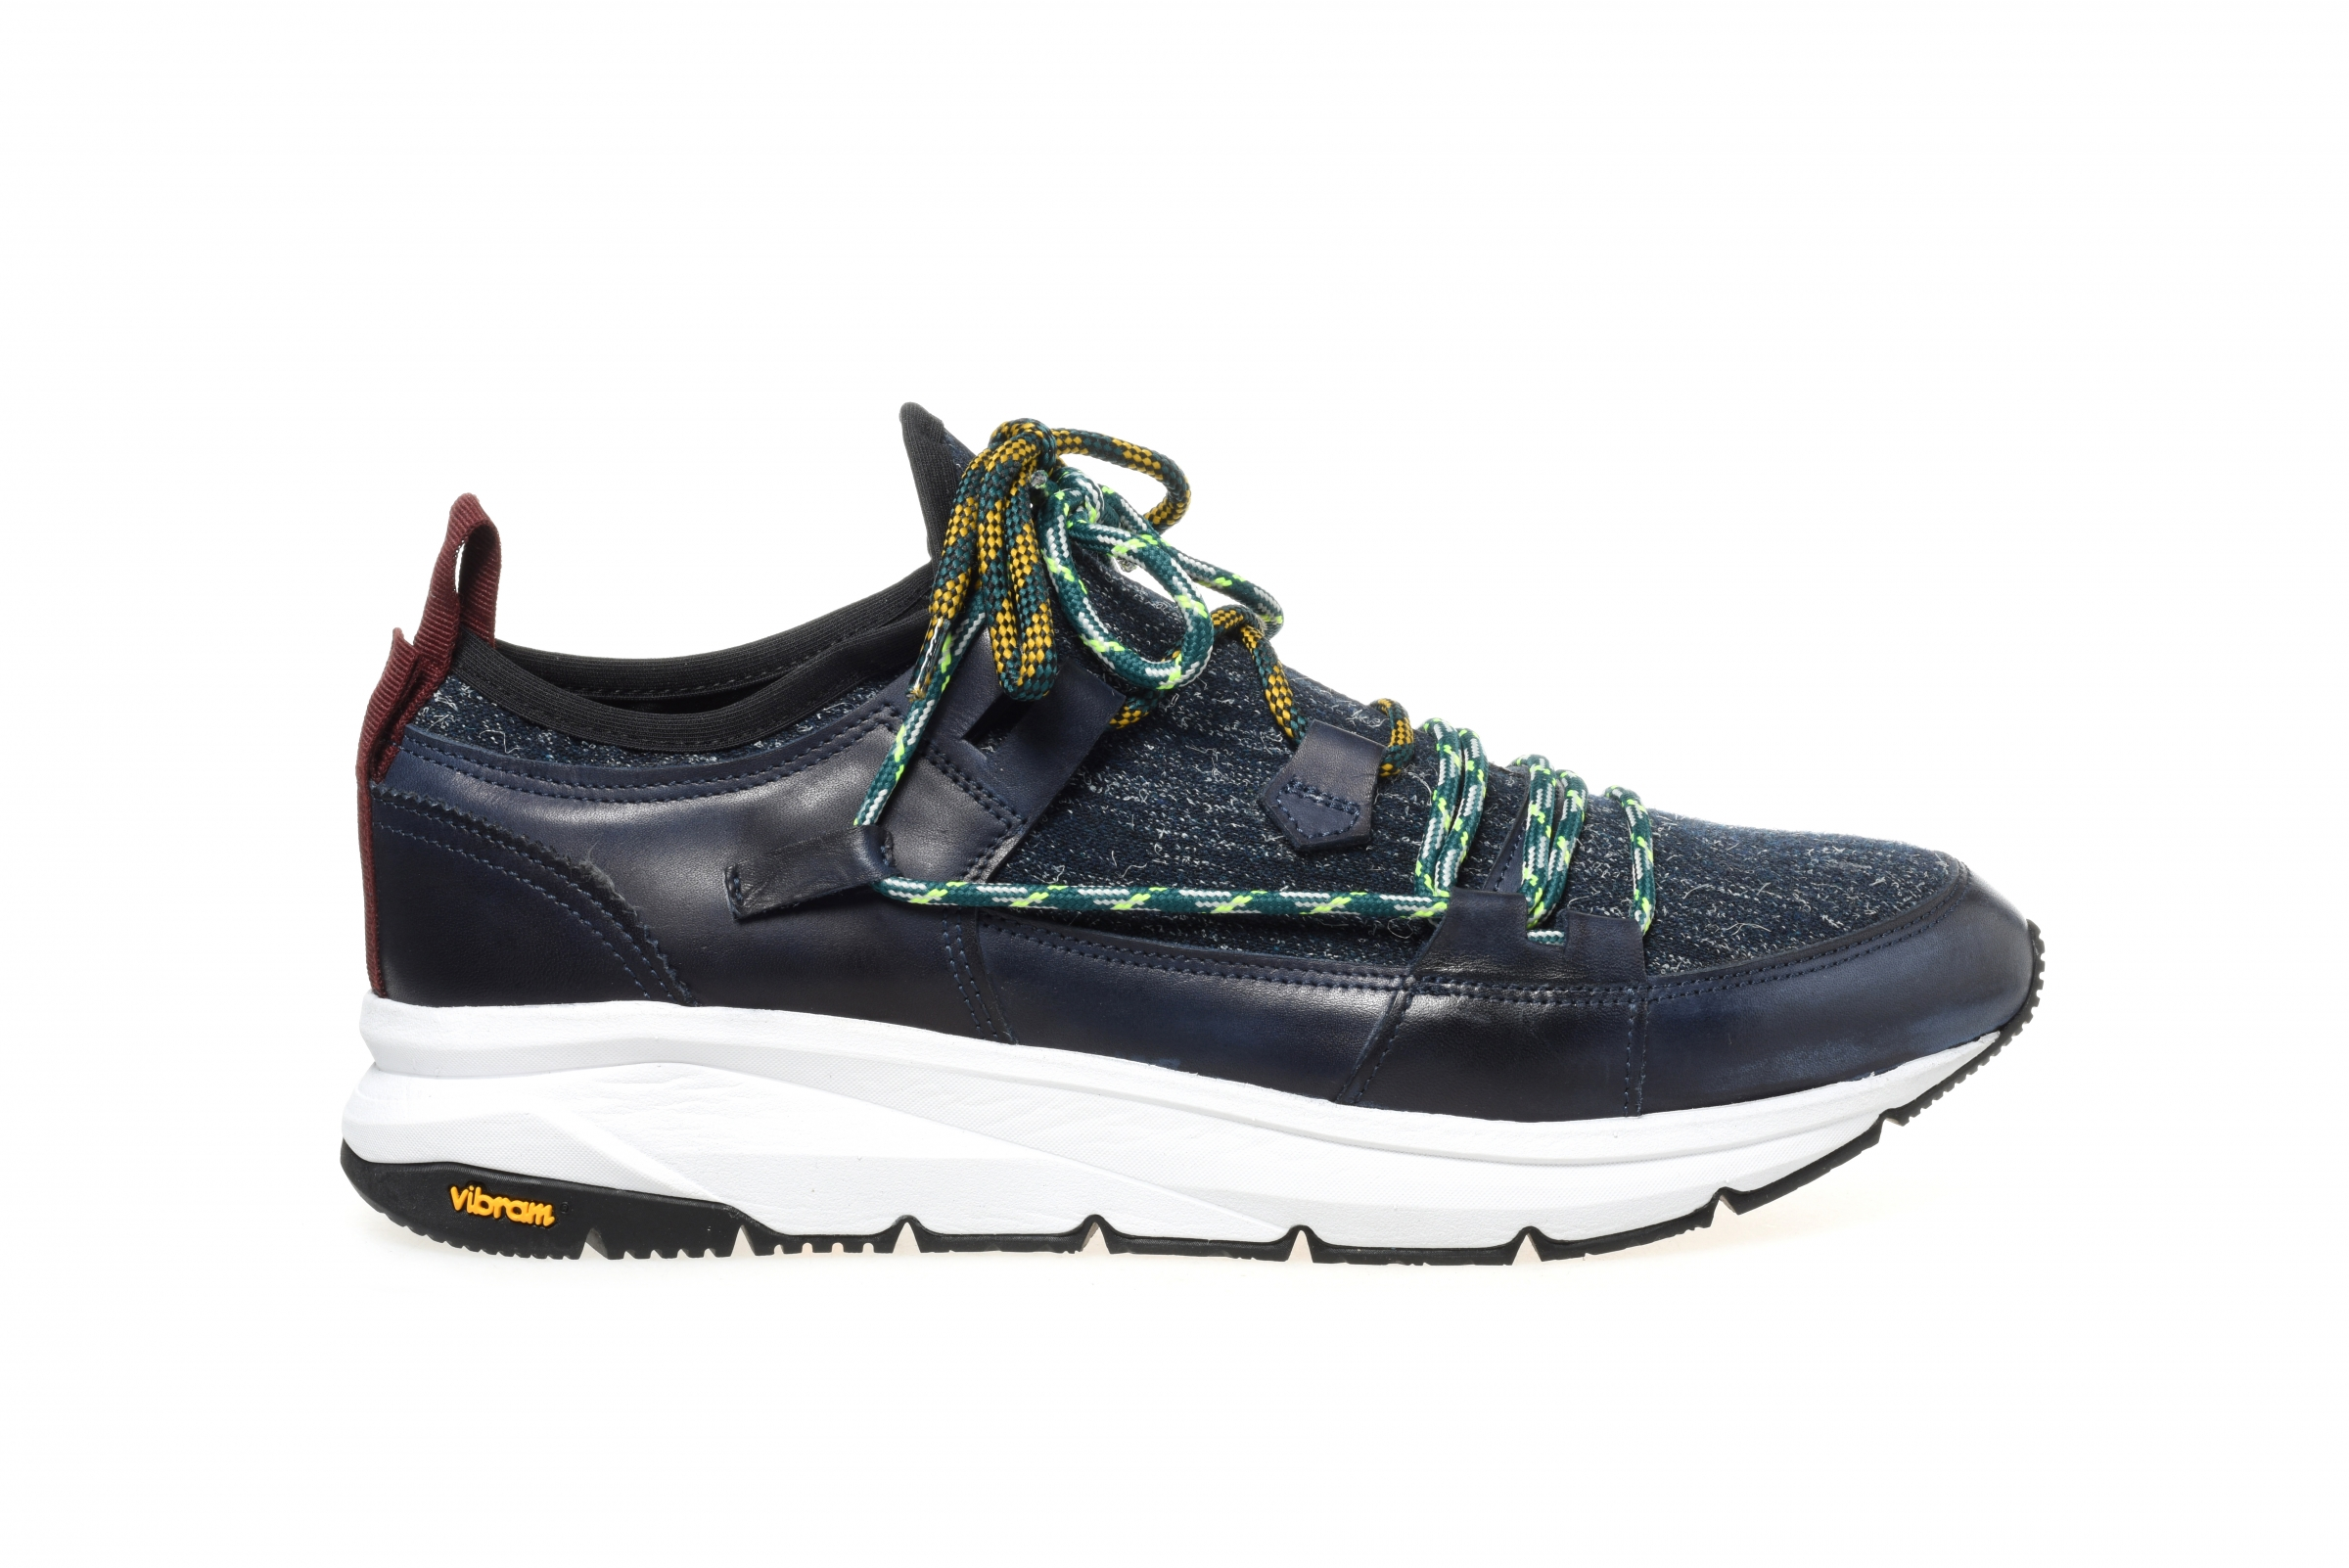 sports shoes 28921 d3397 On the occasion of the 95th edition of Pitti Uomo, Pollini presents the  Hiking Sneaker, a new sneaker with a versatile and refined design, symbol  of the ...